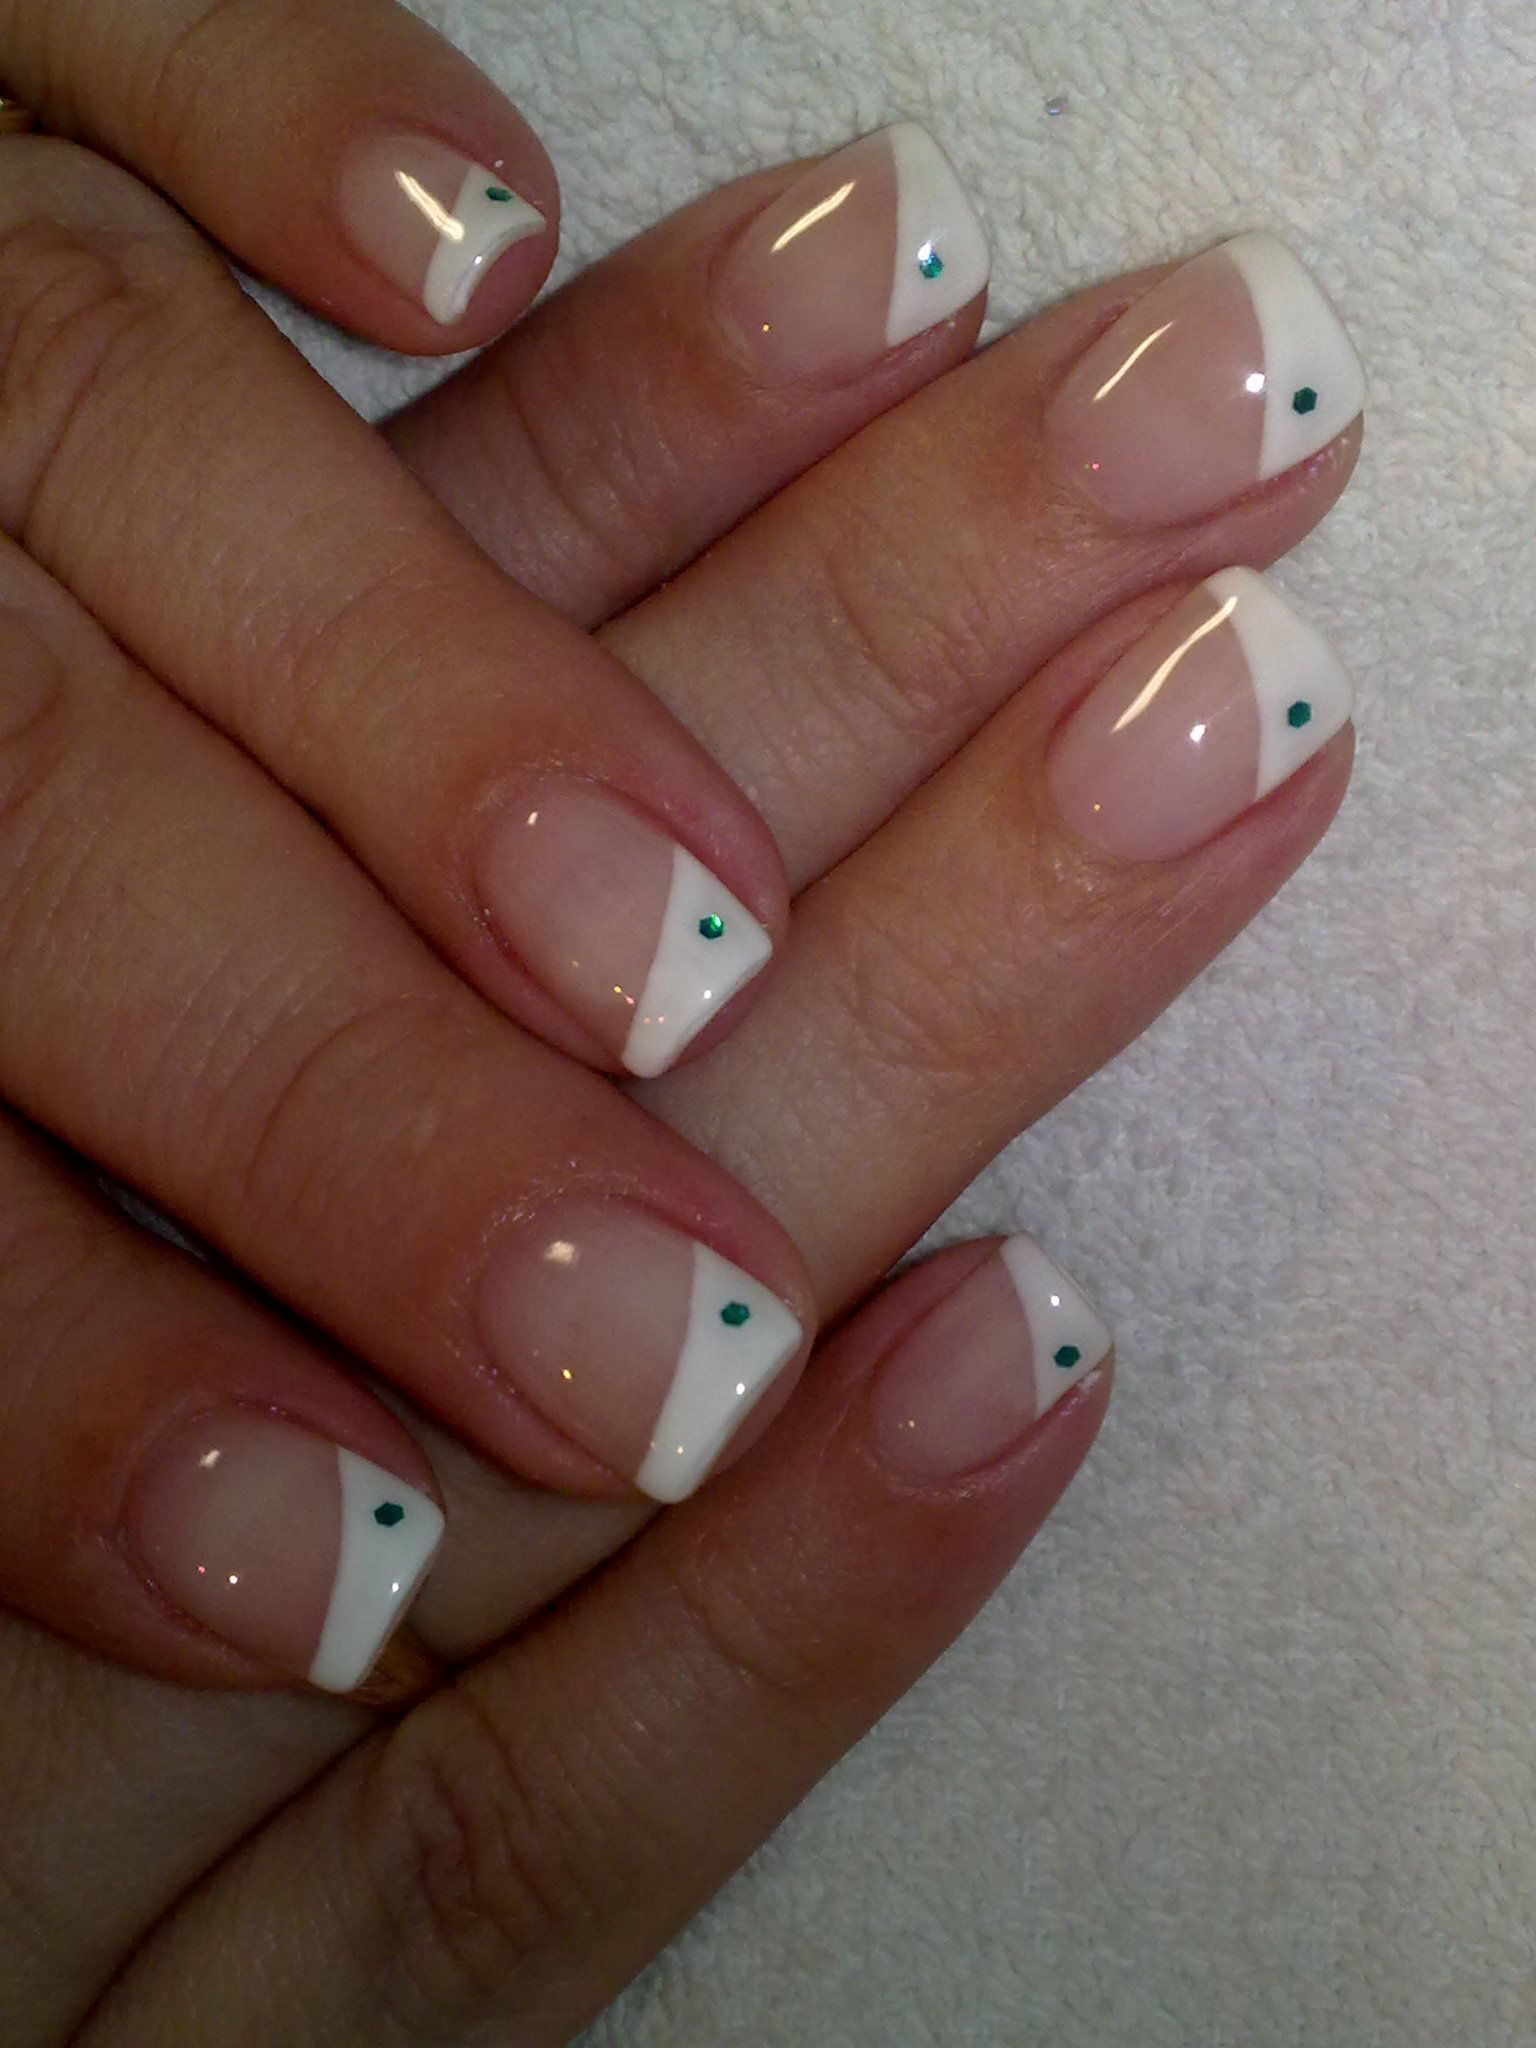 Top 10 Latest French Tip Nail Art Designs 2019 Update French Tip Nail Art French Tip Nail Designs French Tip Nails